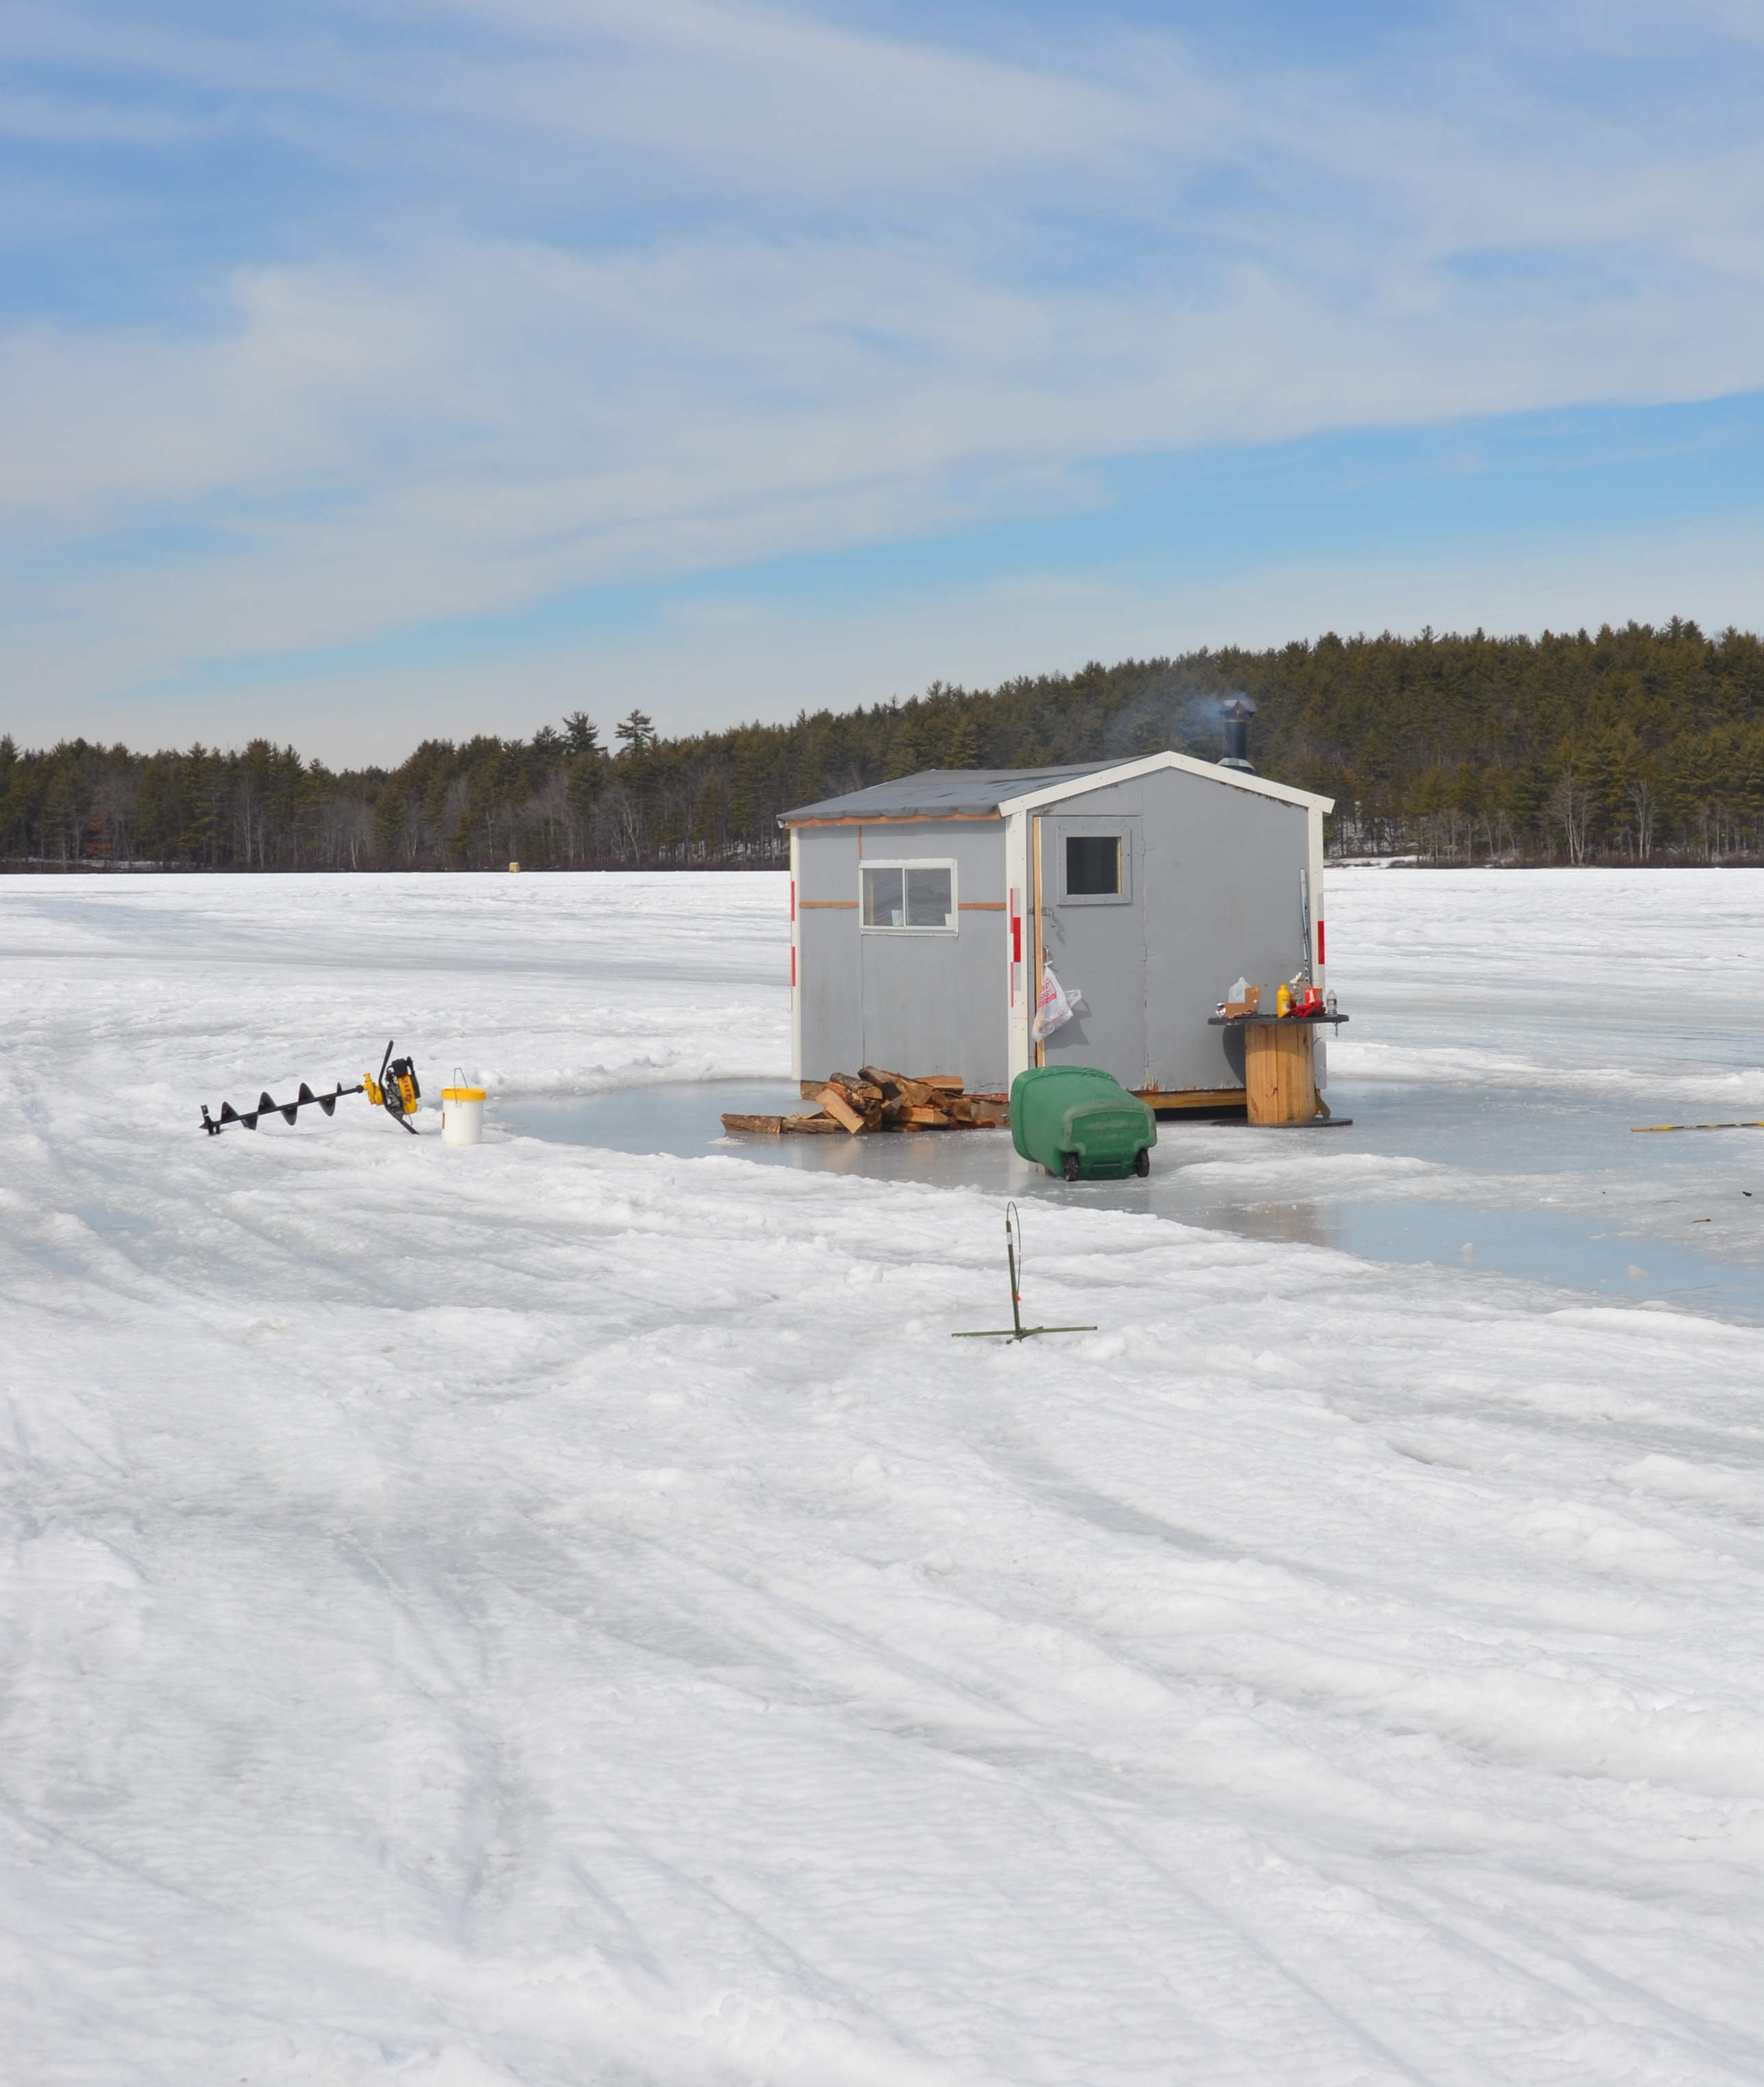 8 Things Learned About Ice Fishing In 15 Minutes Atop A